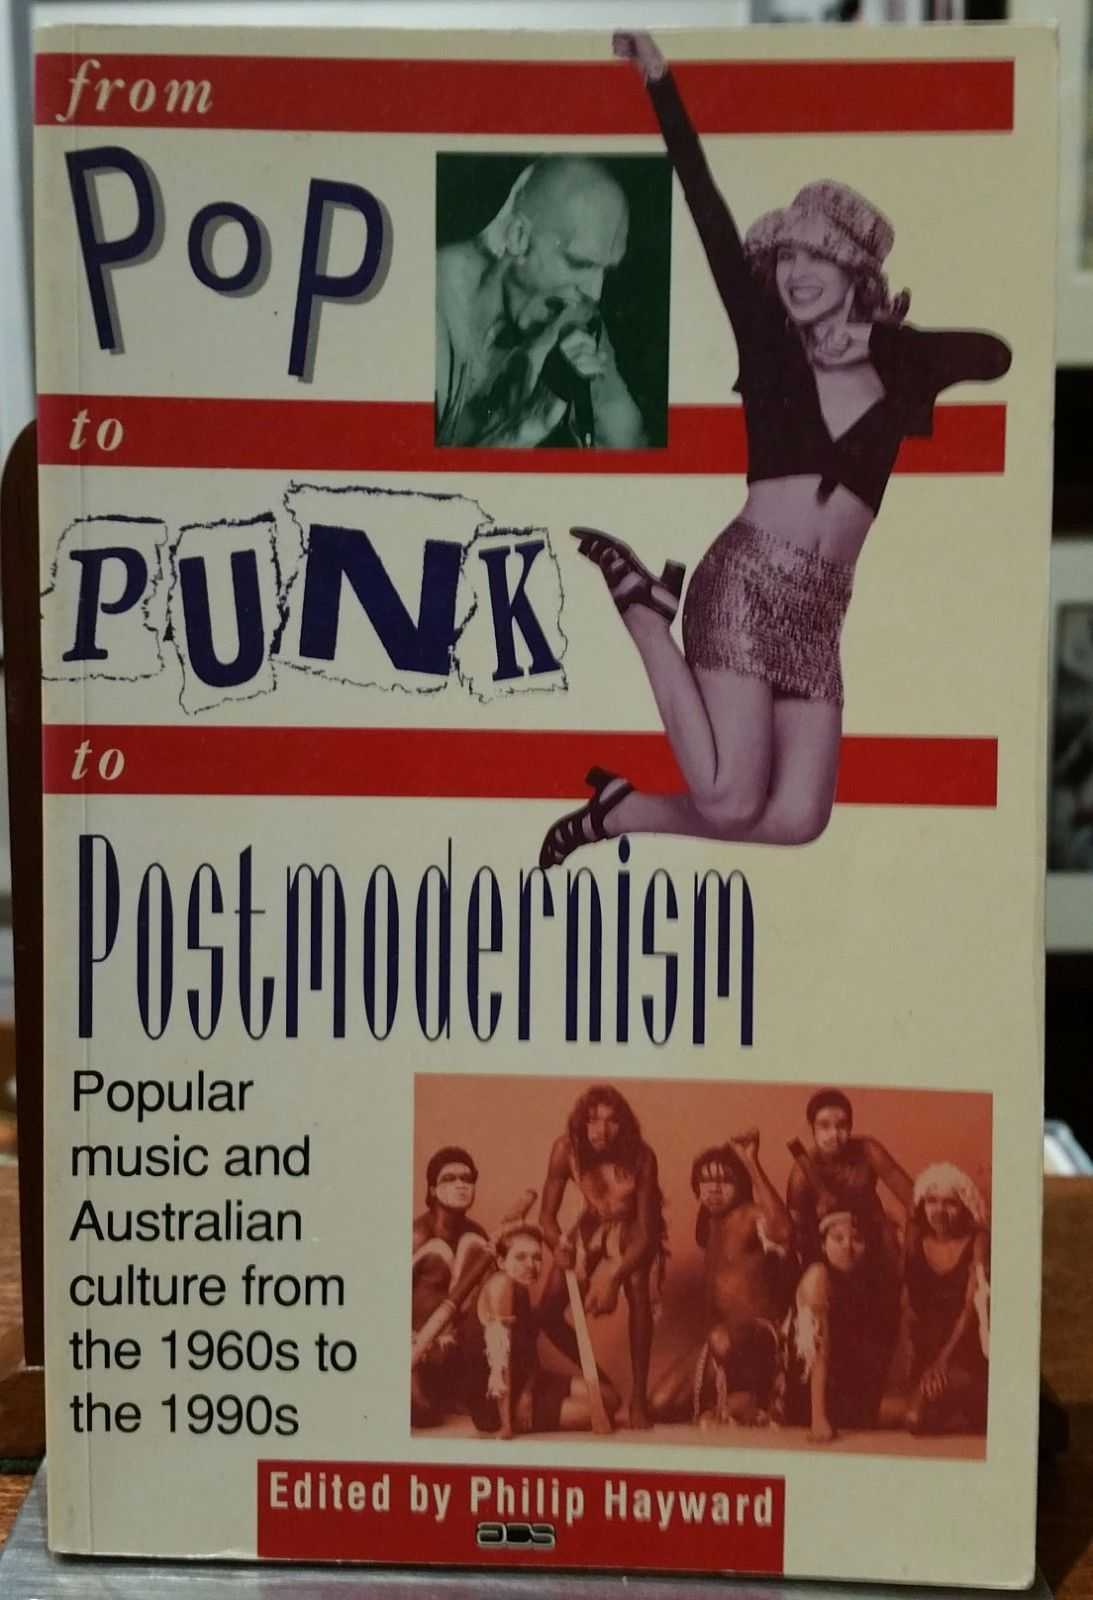 From Pop to Punk to Postmodernism: Popular music and Australian culture from the 1960s to the 1990s, Philip Hayward